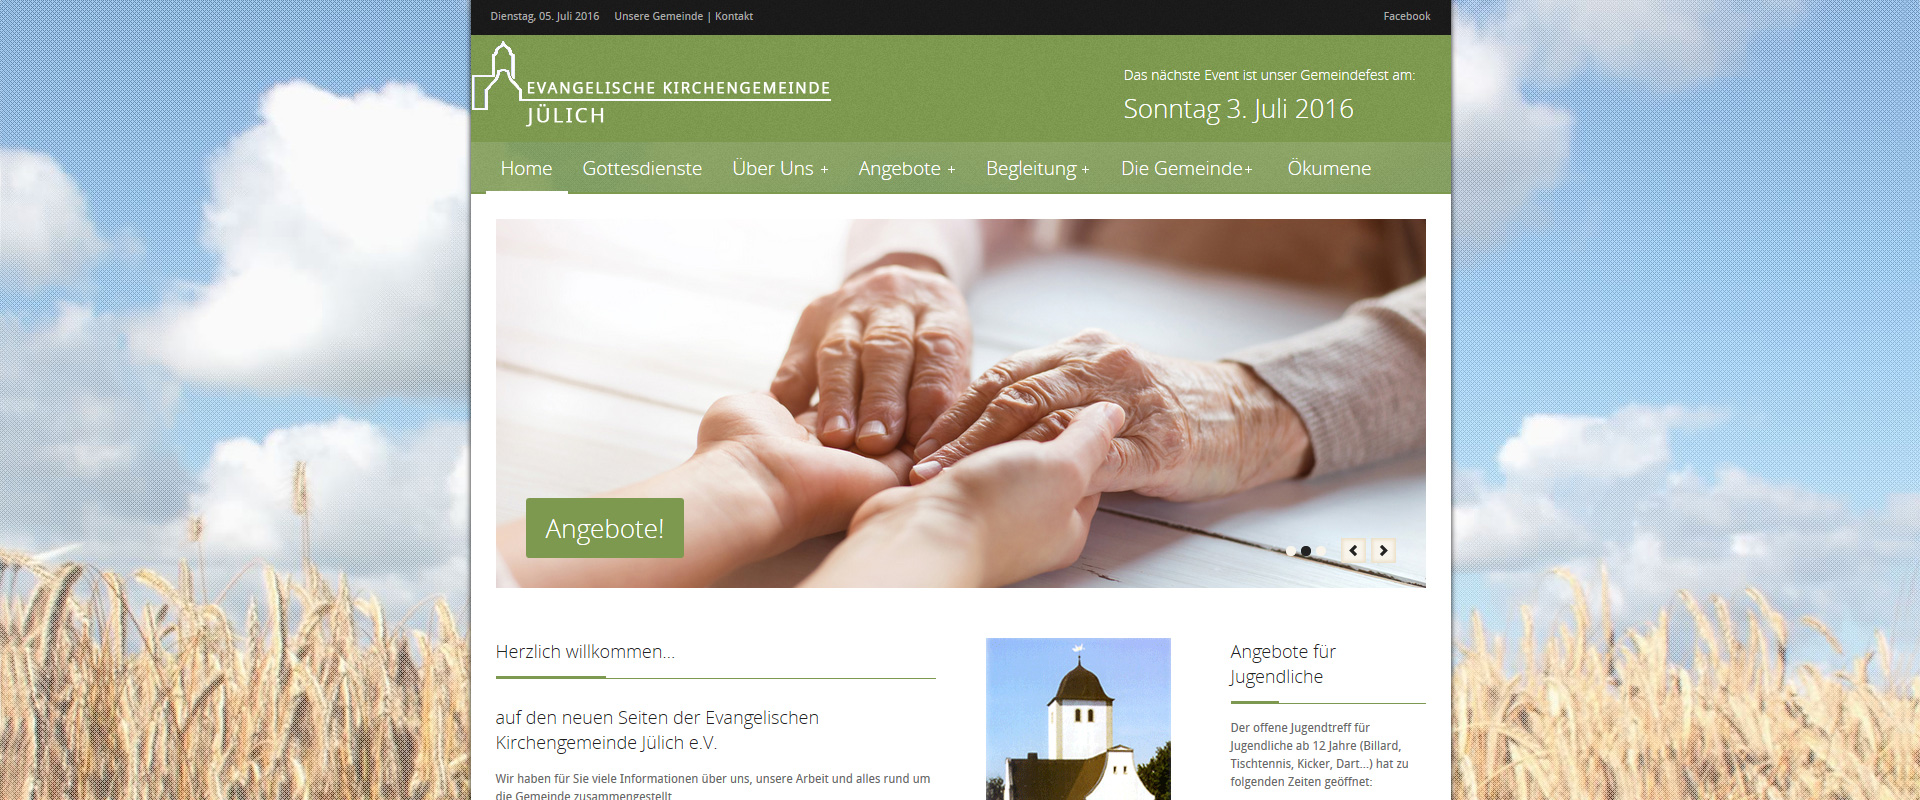 Webdesign Wordpress Joomla Responsive Design